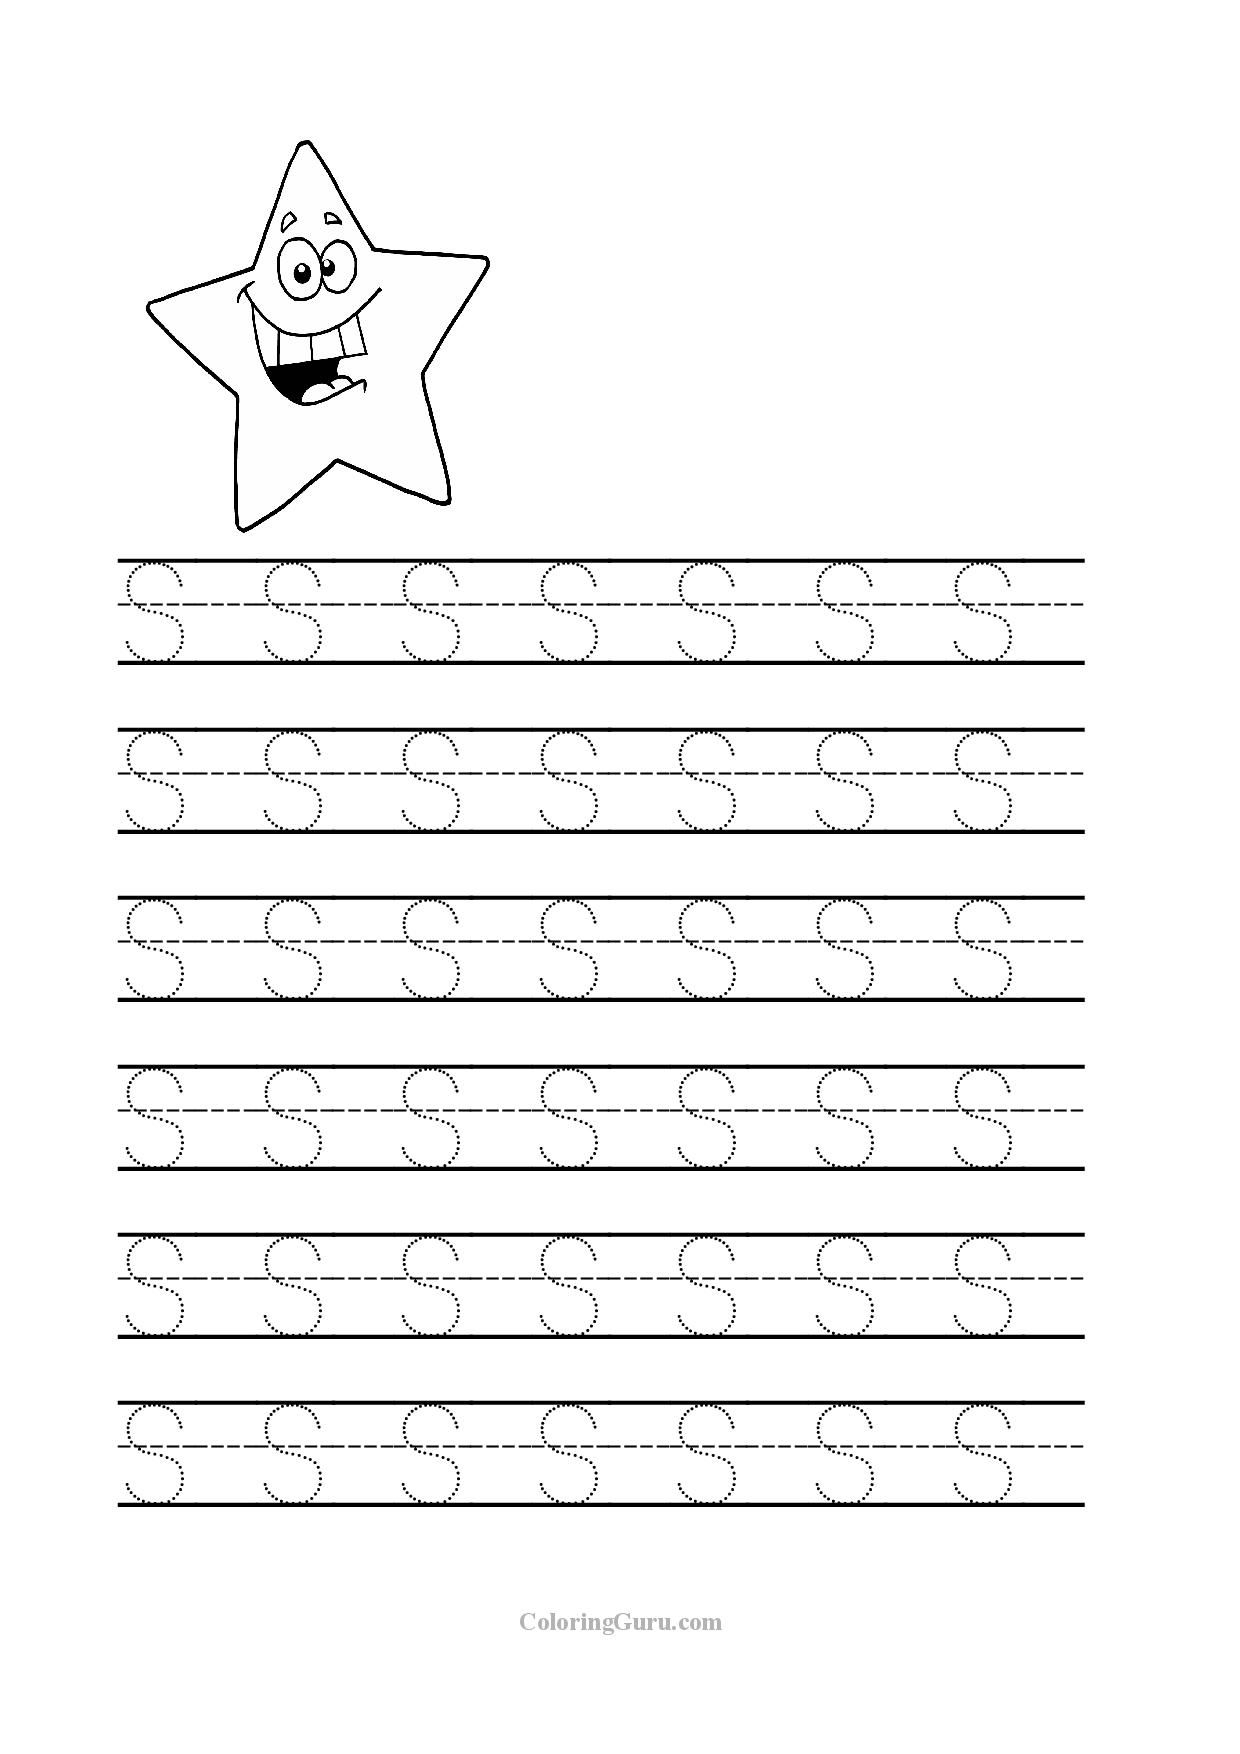 Free Printable Tracing Letter S Worksheets For Preschool in Tracing Letter A Worksheets